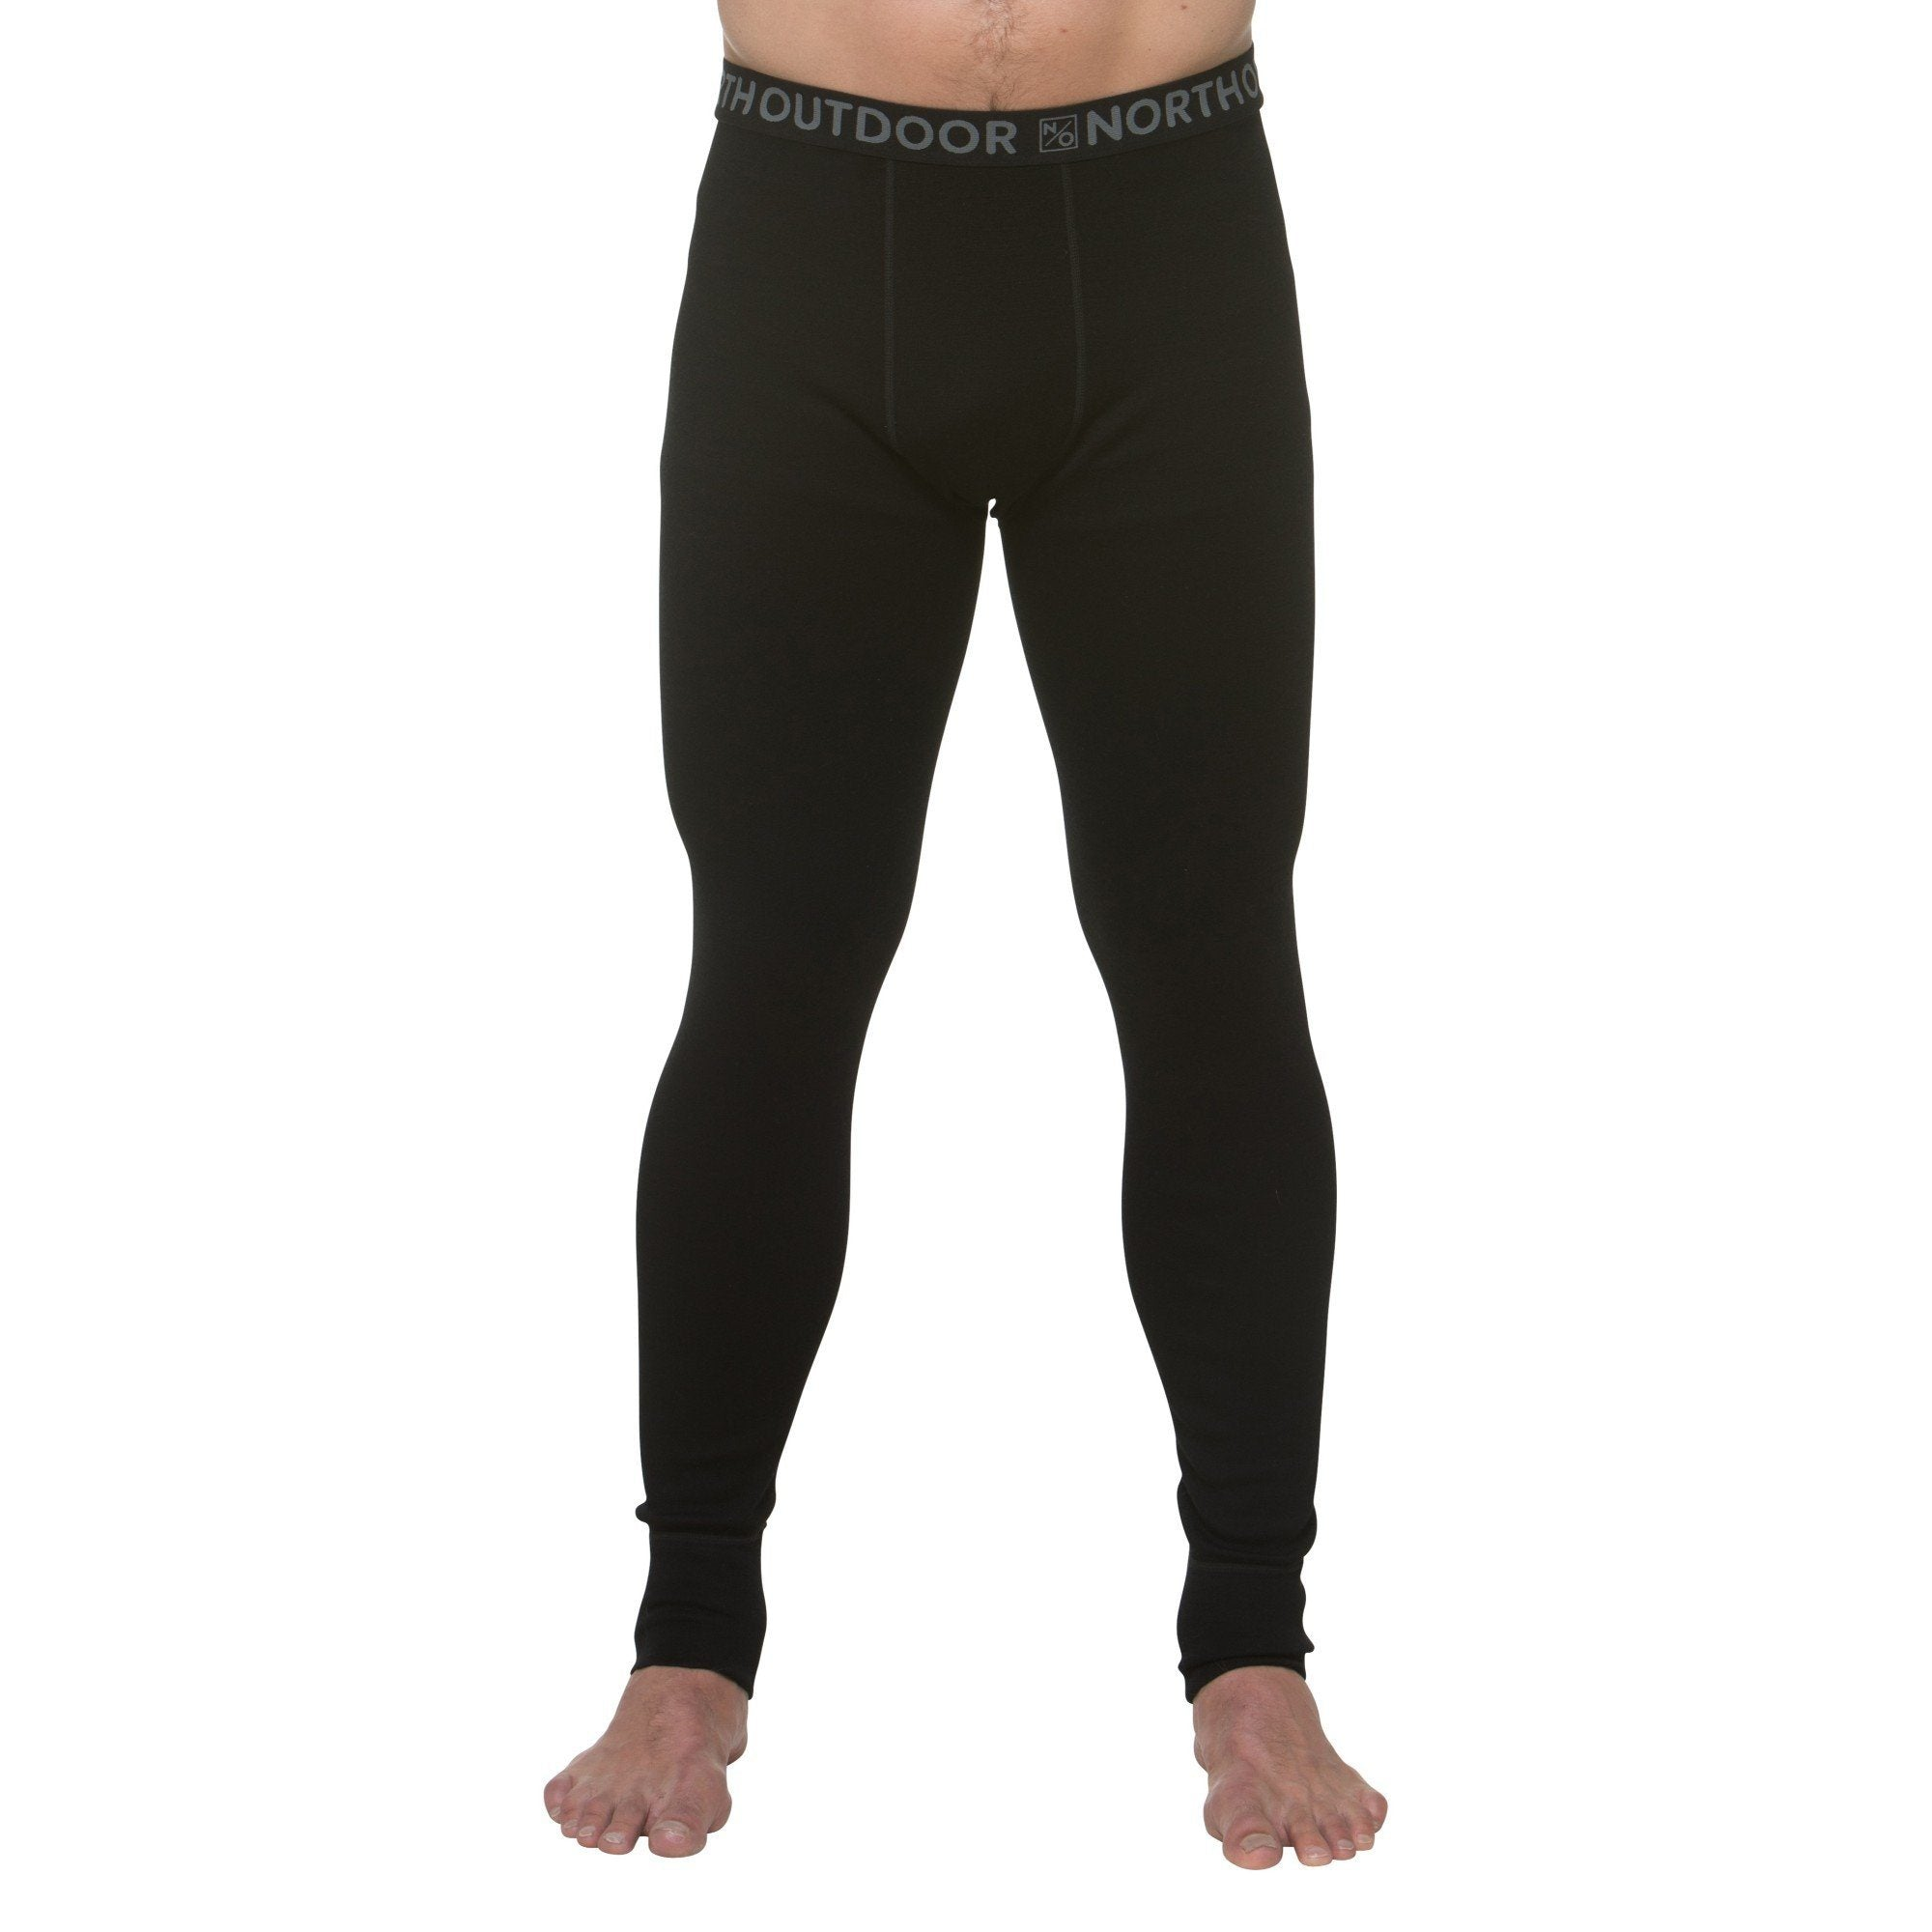 North Outdoor - M's mid-layer pants - 100 % merino wool ARCTIC 260 - Weekendbee - sustainable sportswear